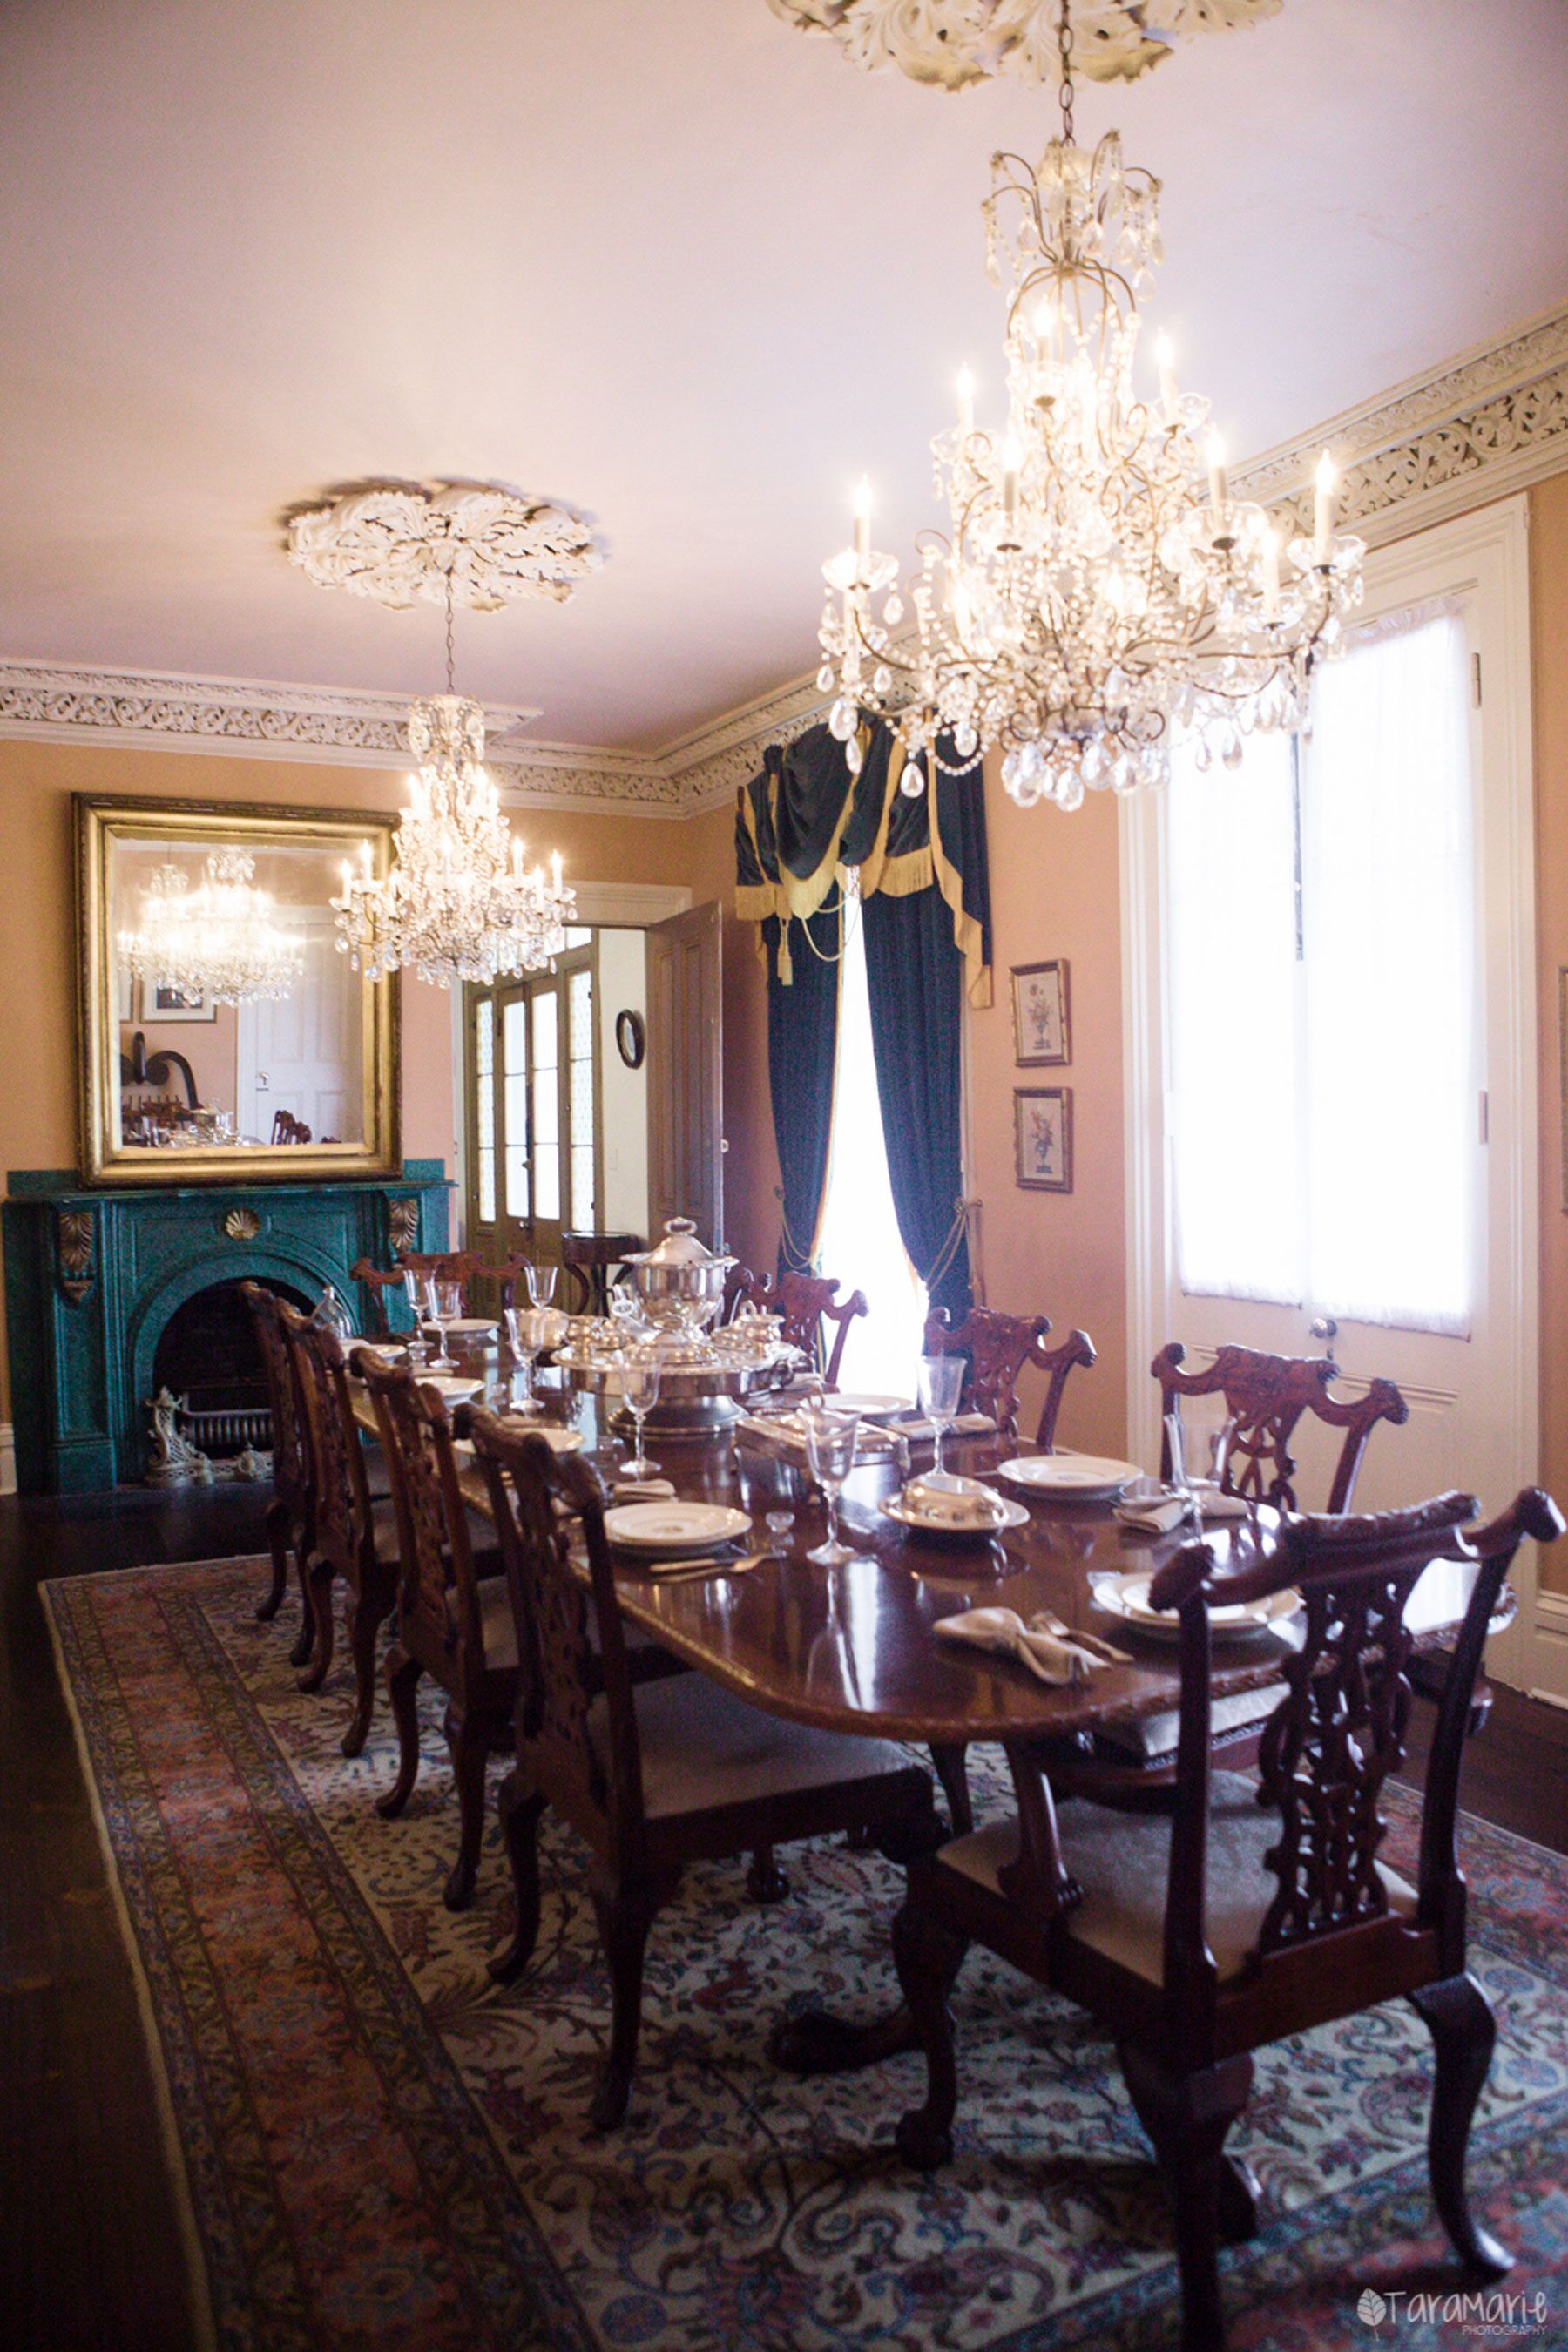 Dining Room where the family ate the Oleander cake that